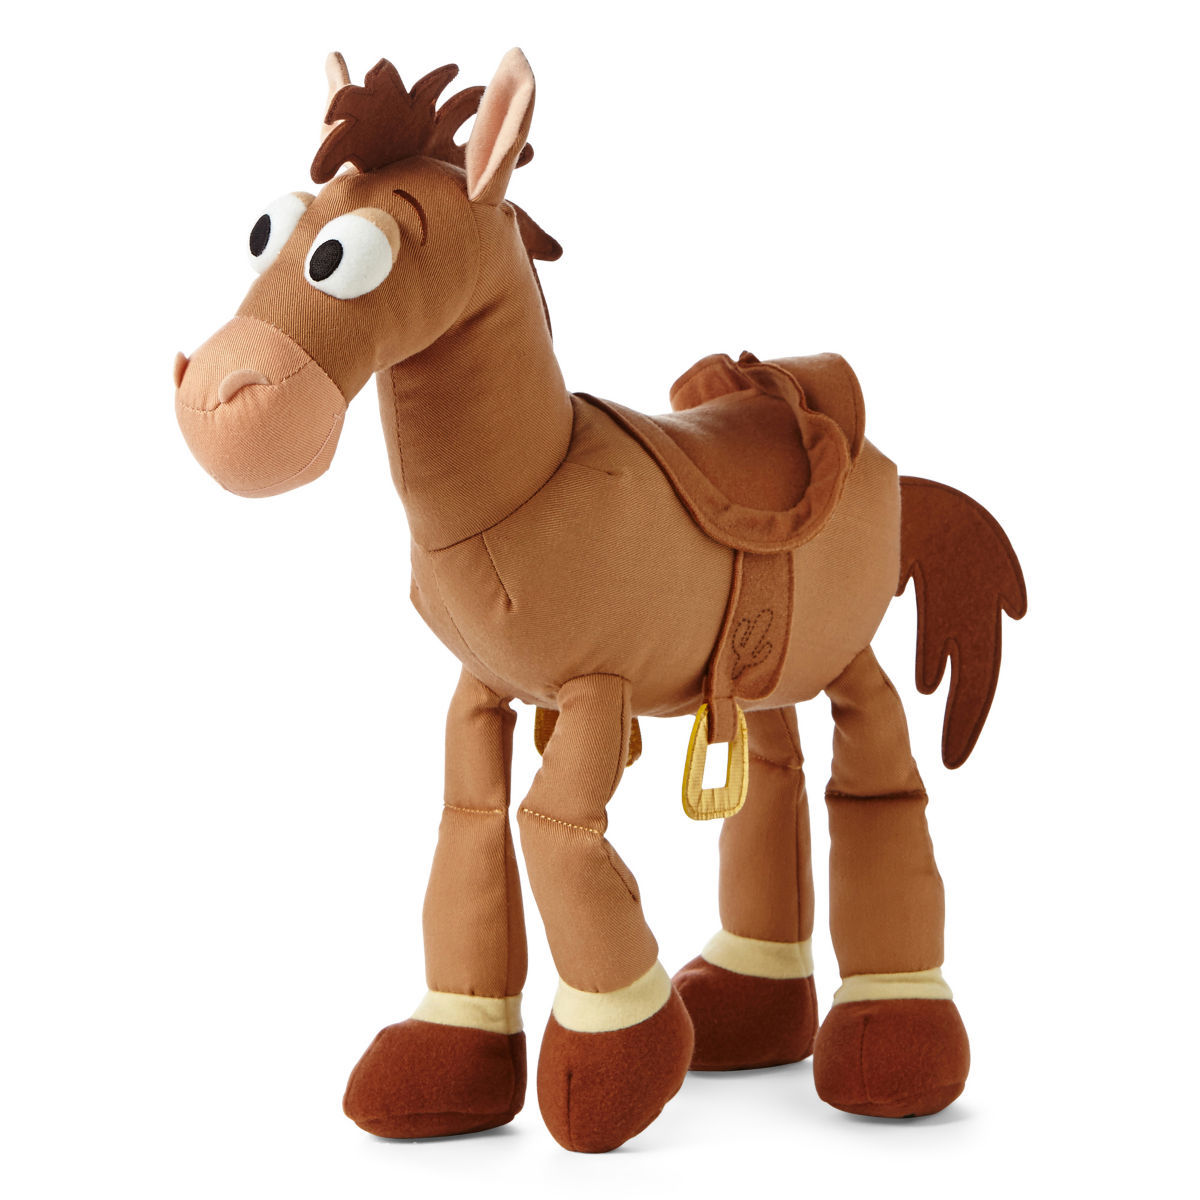 30cm Pixar Toy Story Exclusive Plush Figure Bullseye The Horse